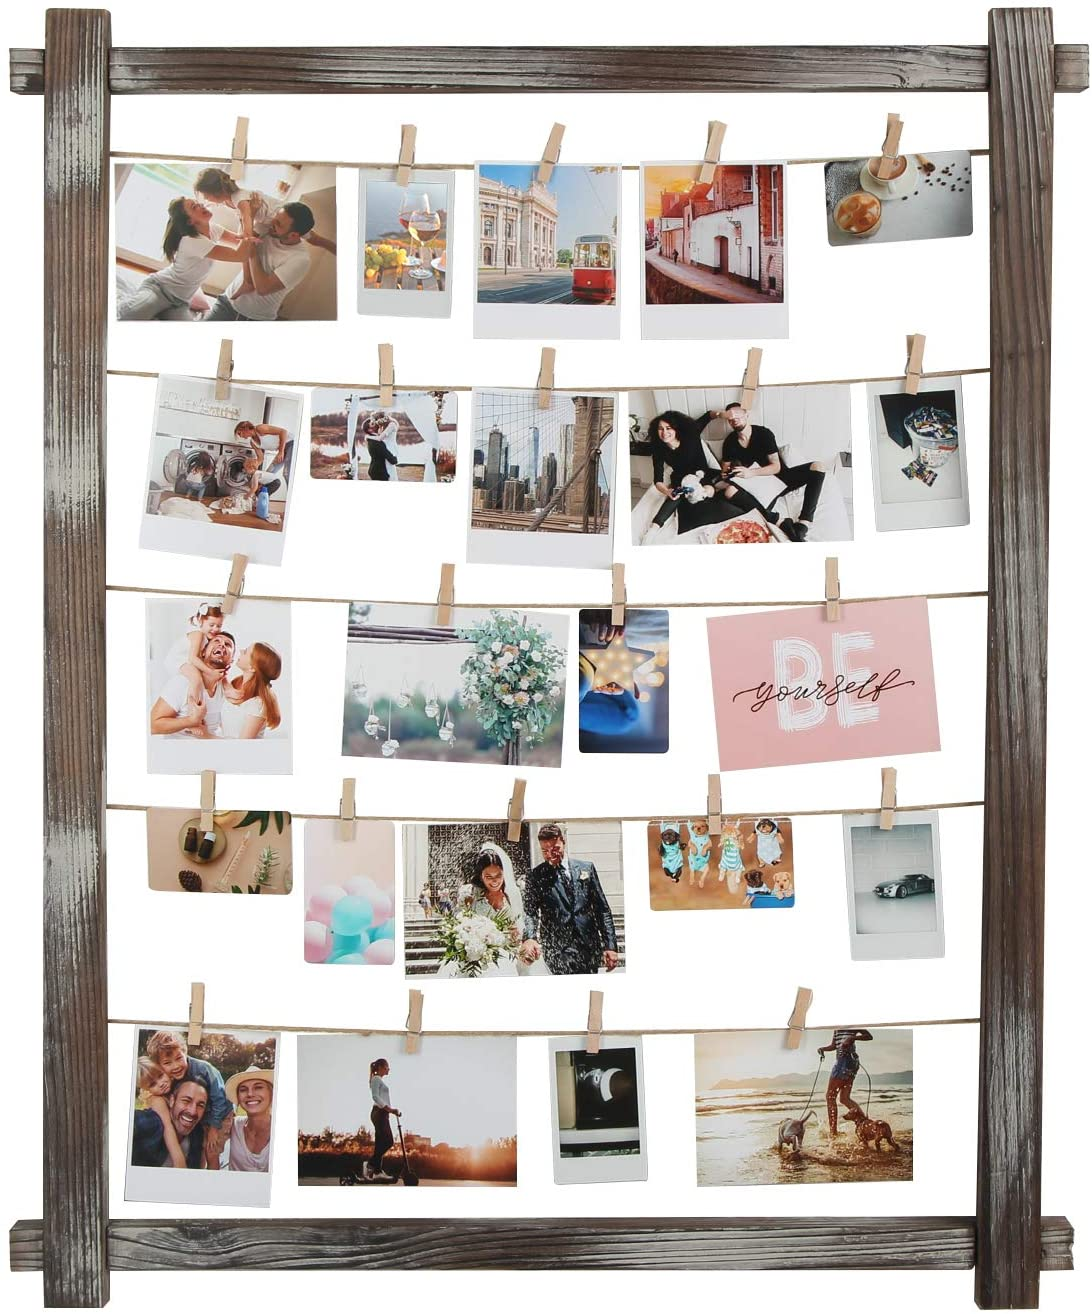 J JACKCUBE DESIGN Rustic Wood Frame Photo Holder Hanging Picture Collage Board for Multi Photo Display Wall Decor with 35 Clips -MK562B